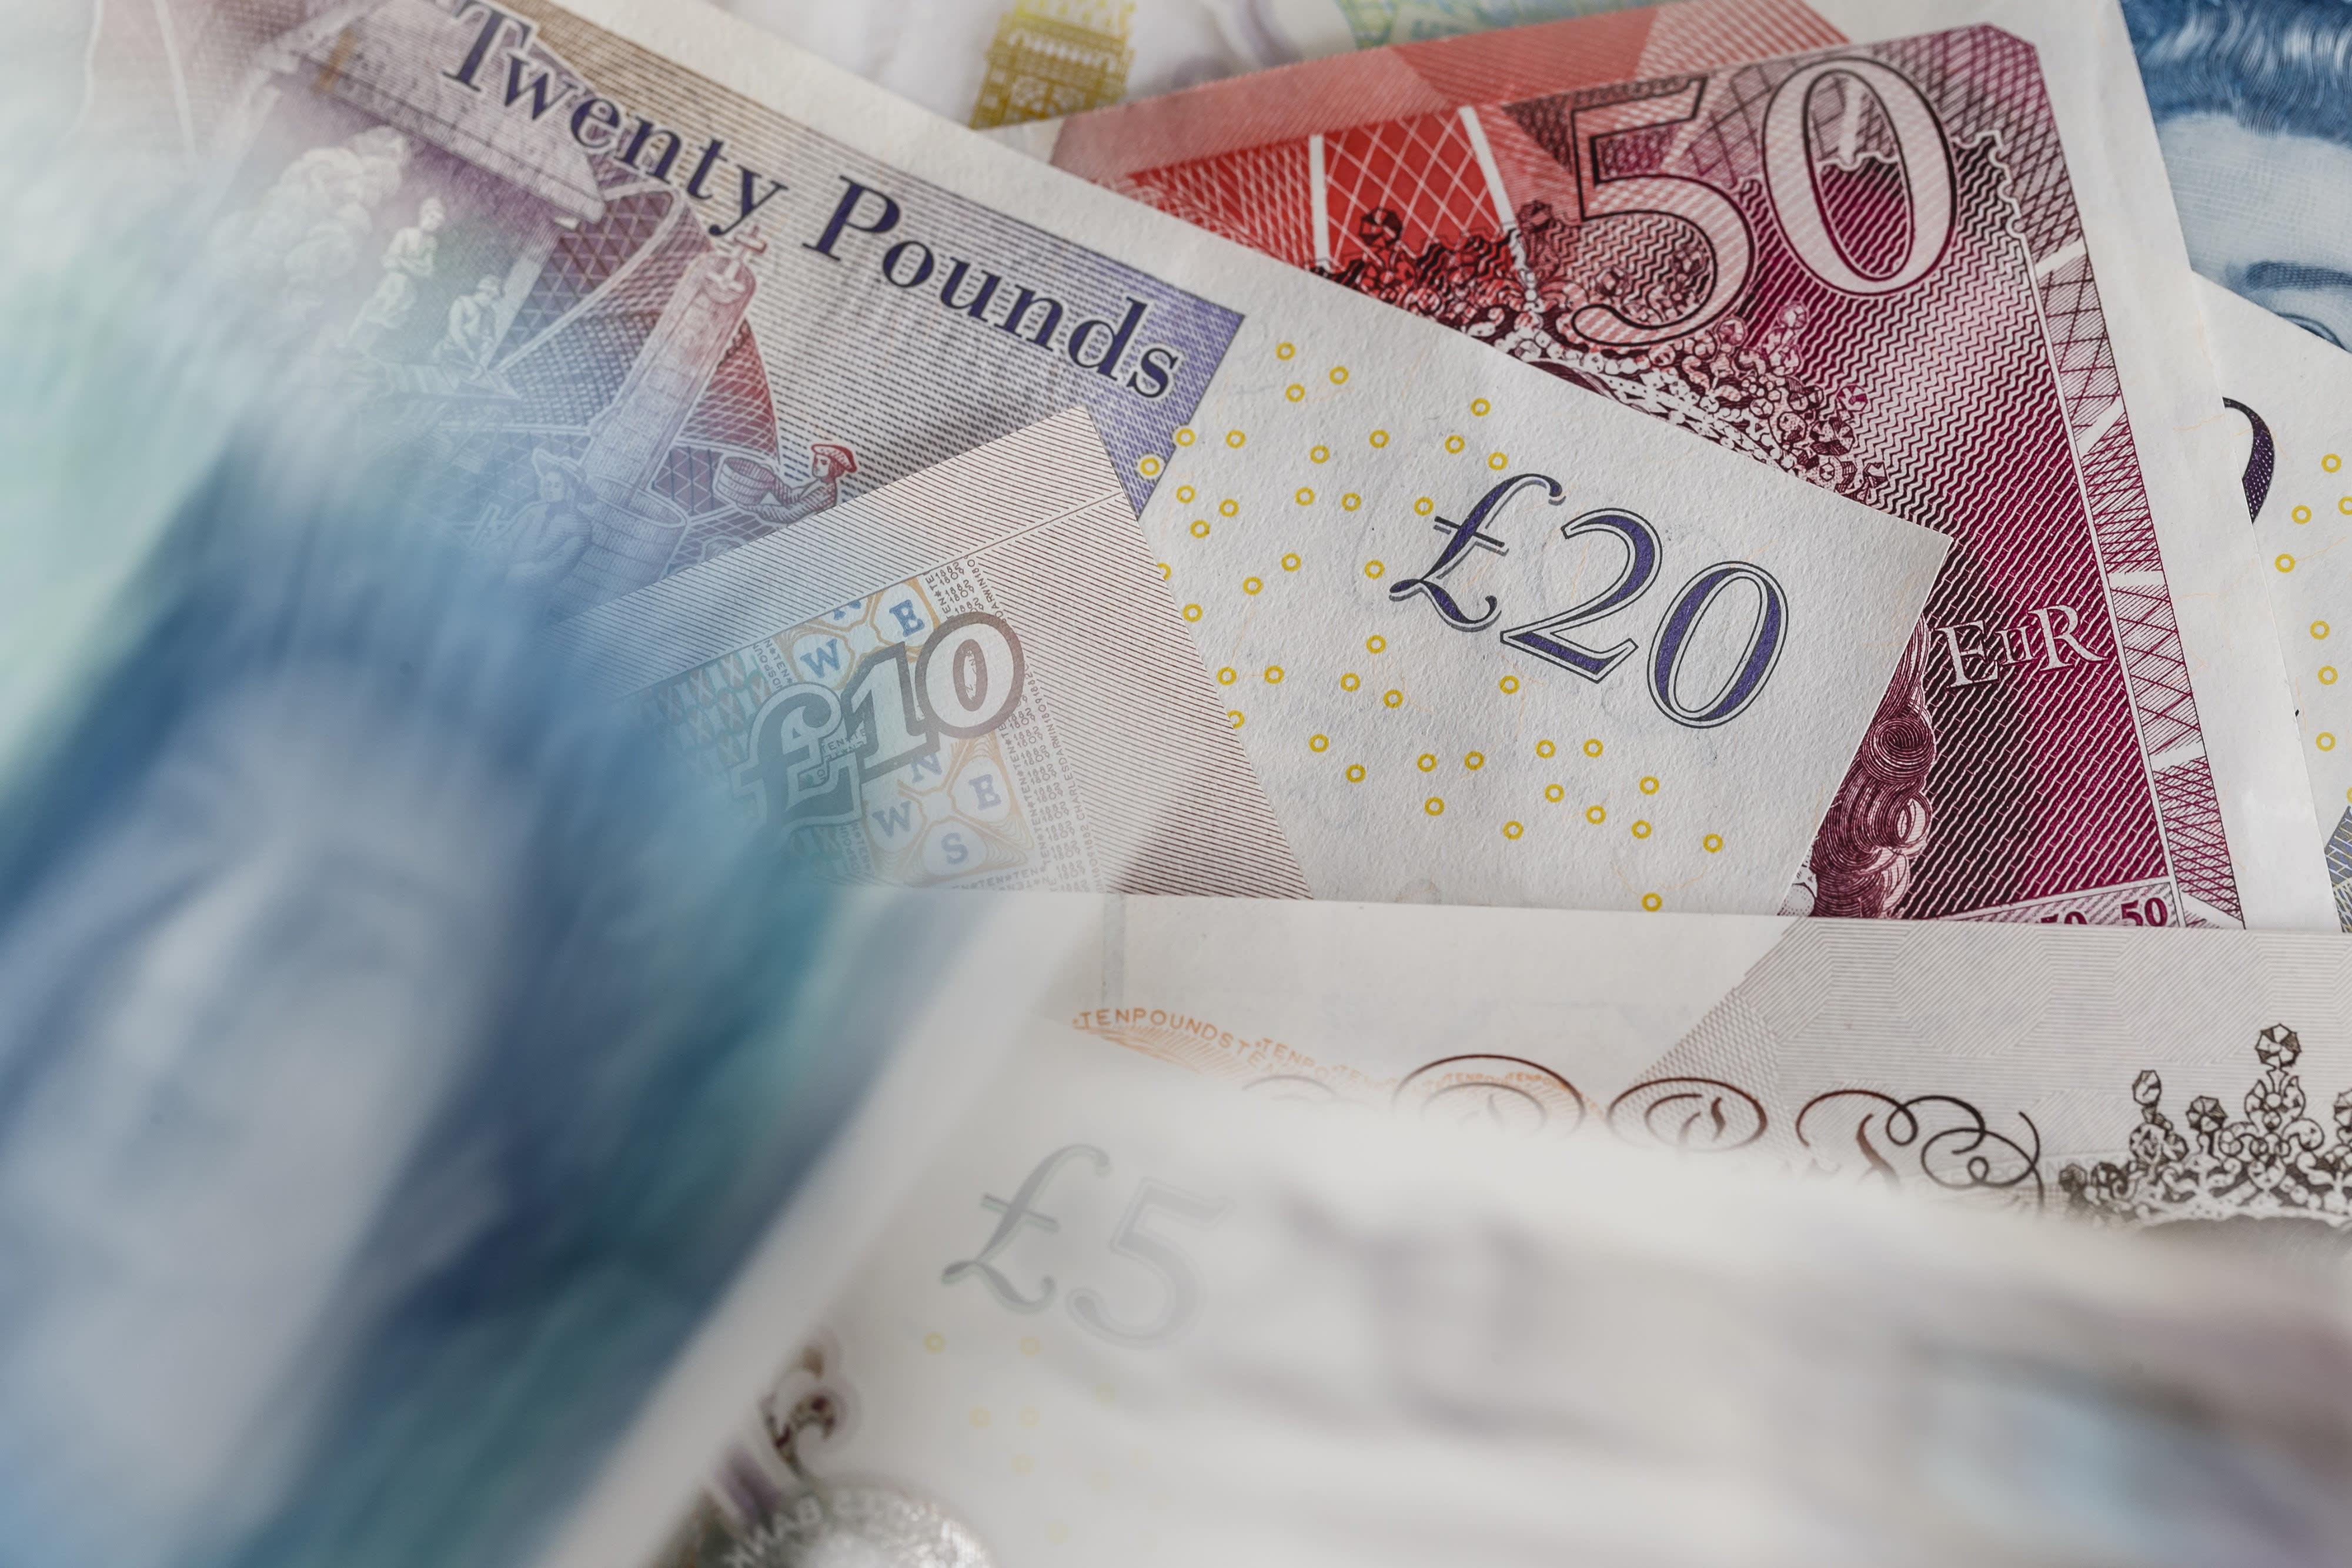 Woodford boosted by Provident Financial bid